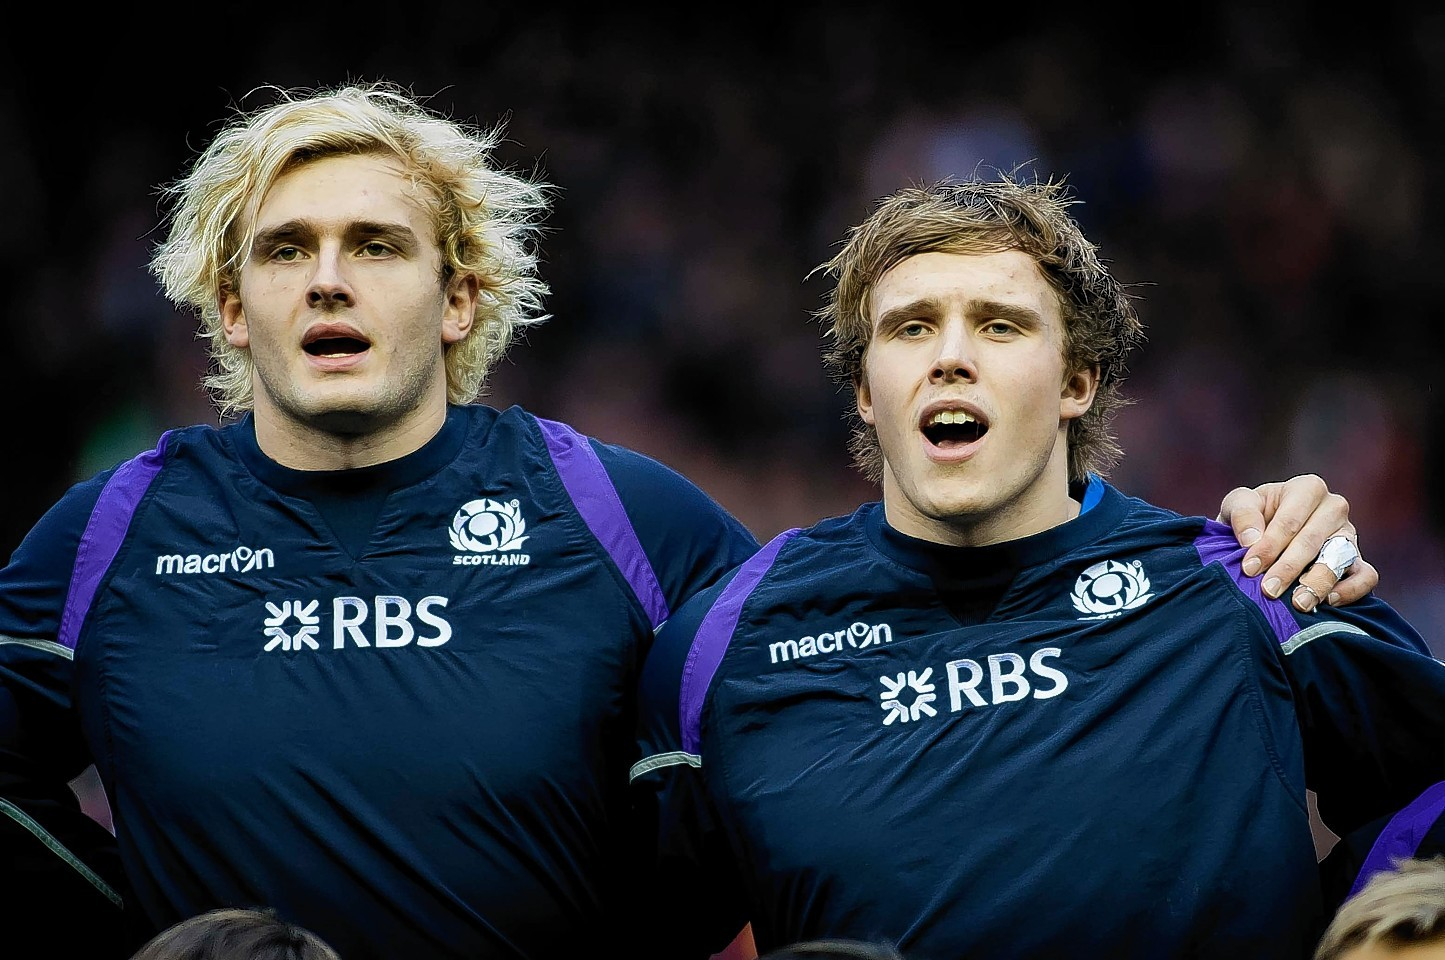 Richie and Jonny Gray